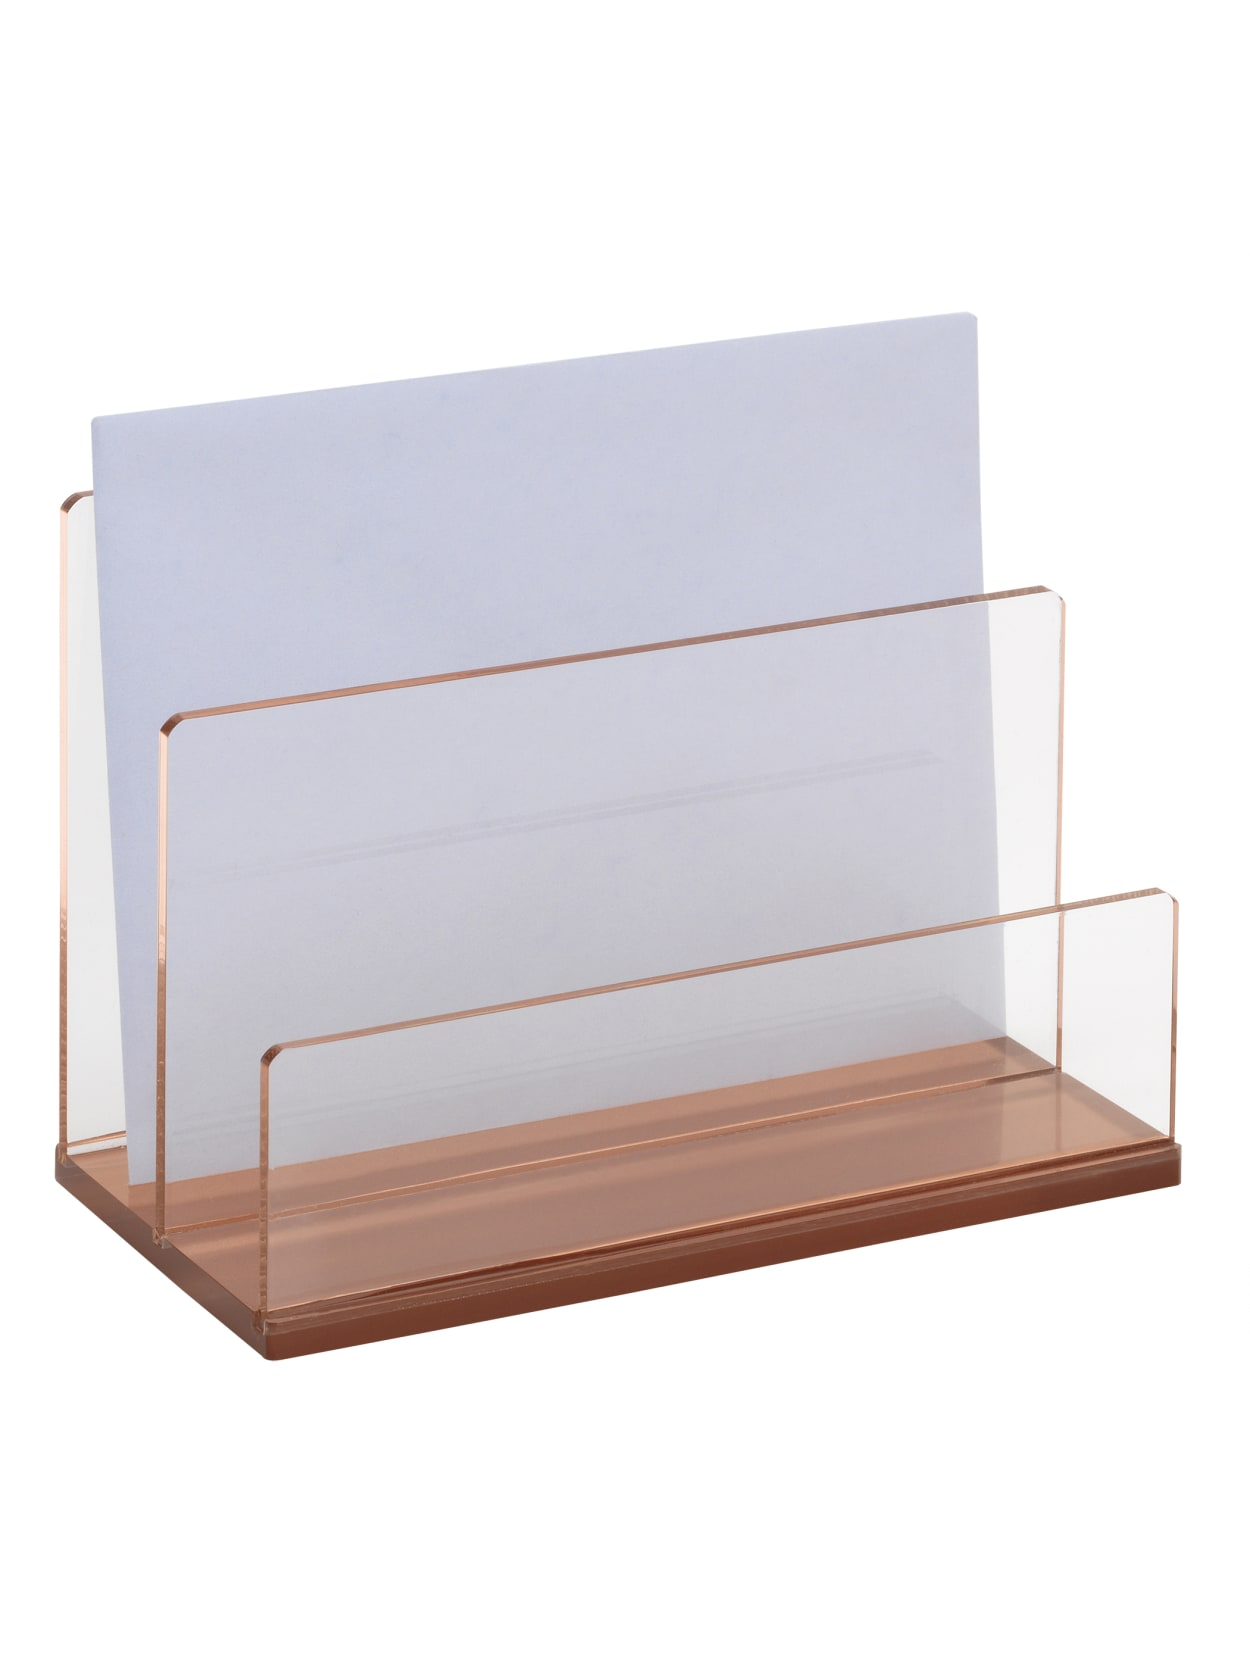 Image of: Realspace Rose Gold Acrylic 2 Compartment Desk Sorter Letter Size Office Depot